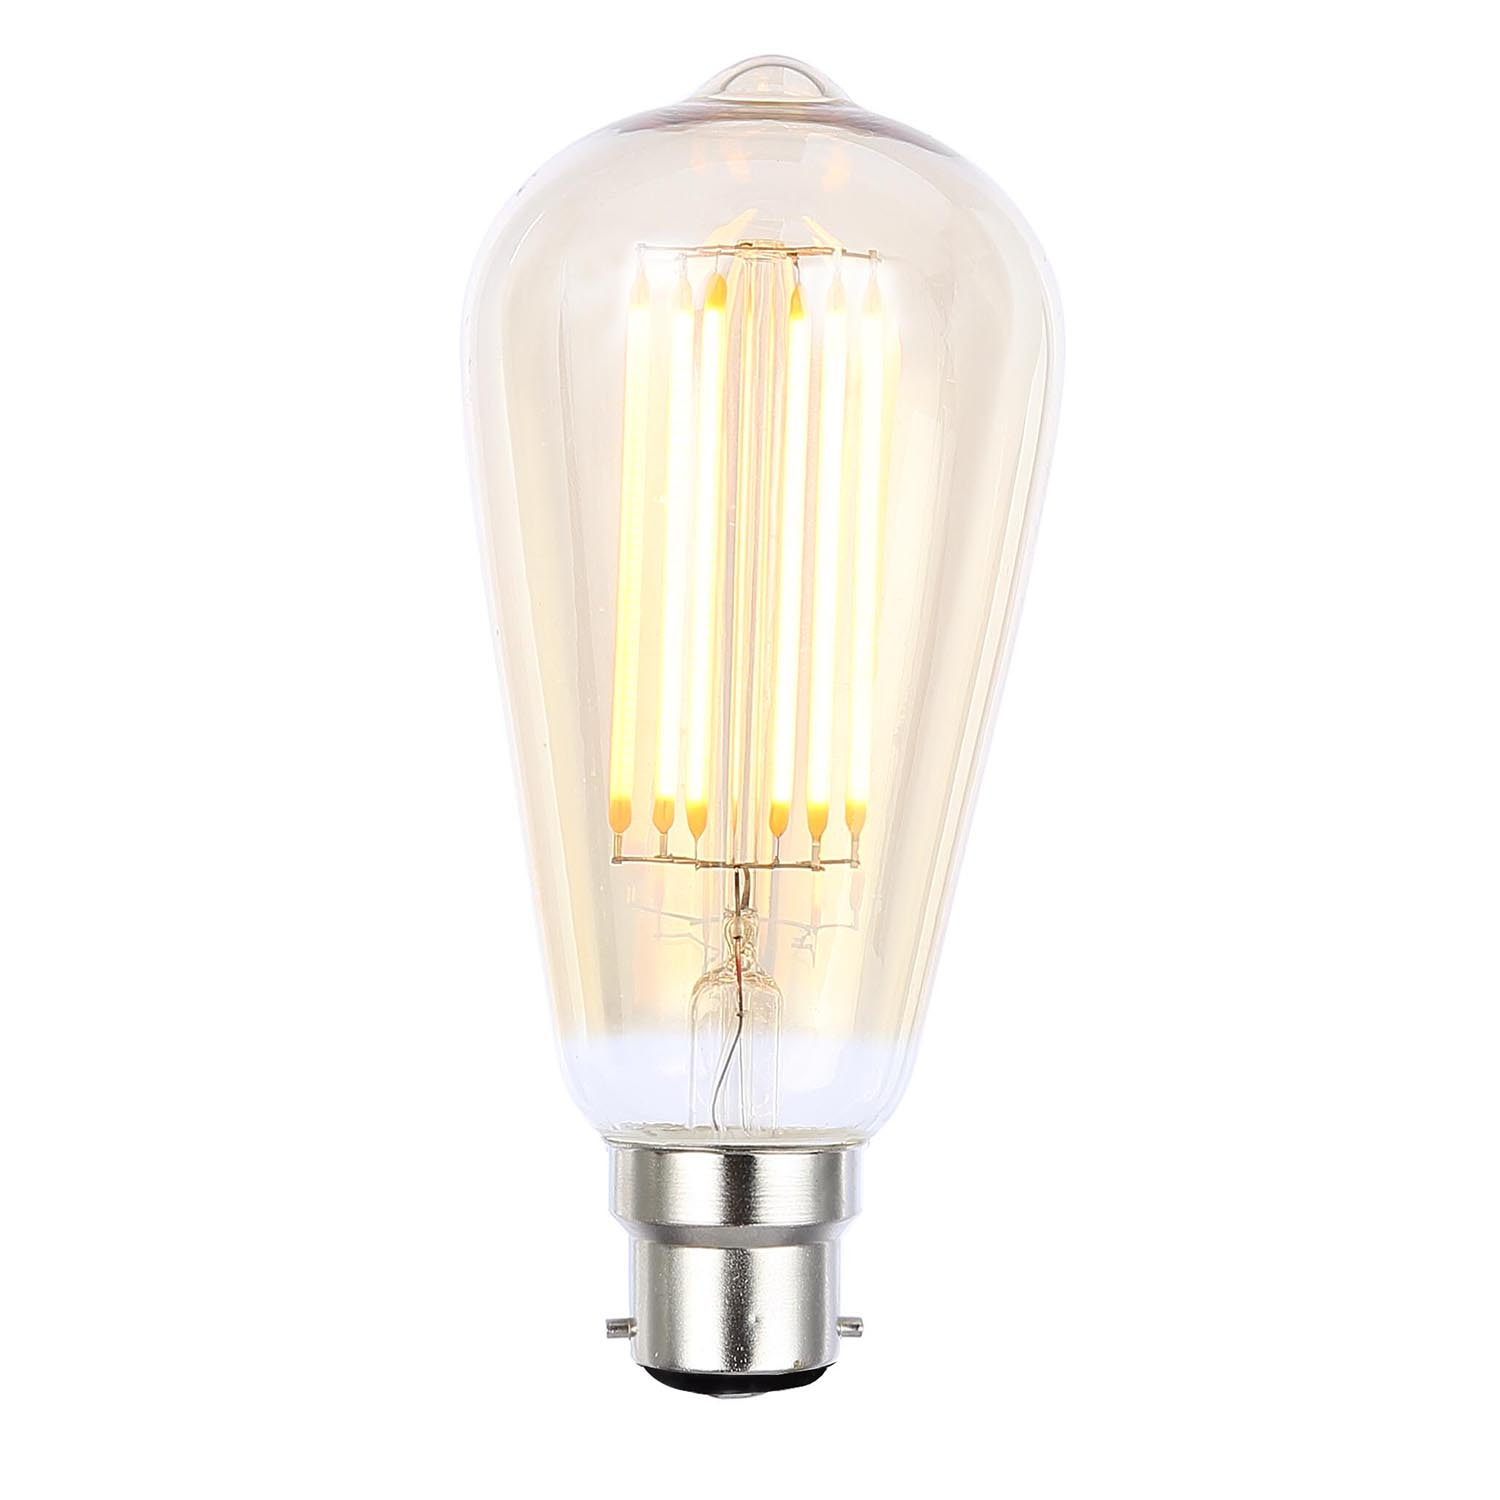 Image of Casa 6W LED Cage Bc Filament Light Bulb, Tinted